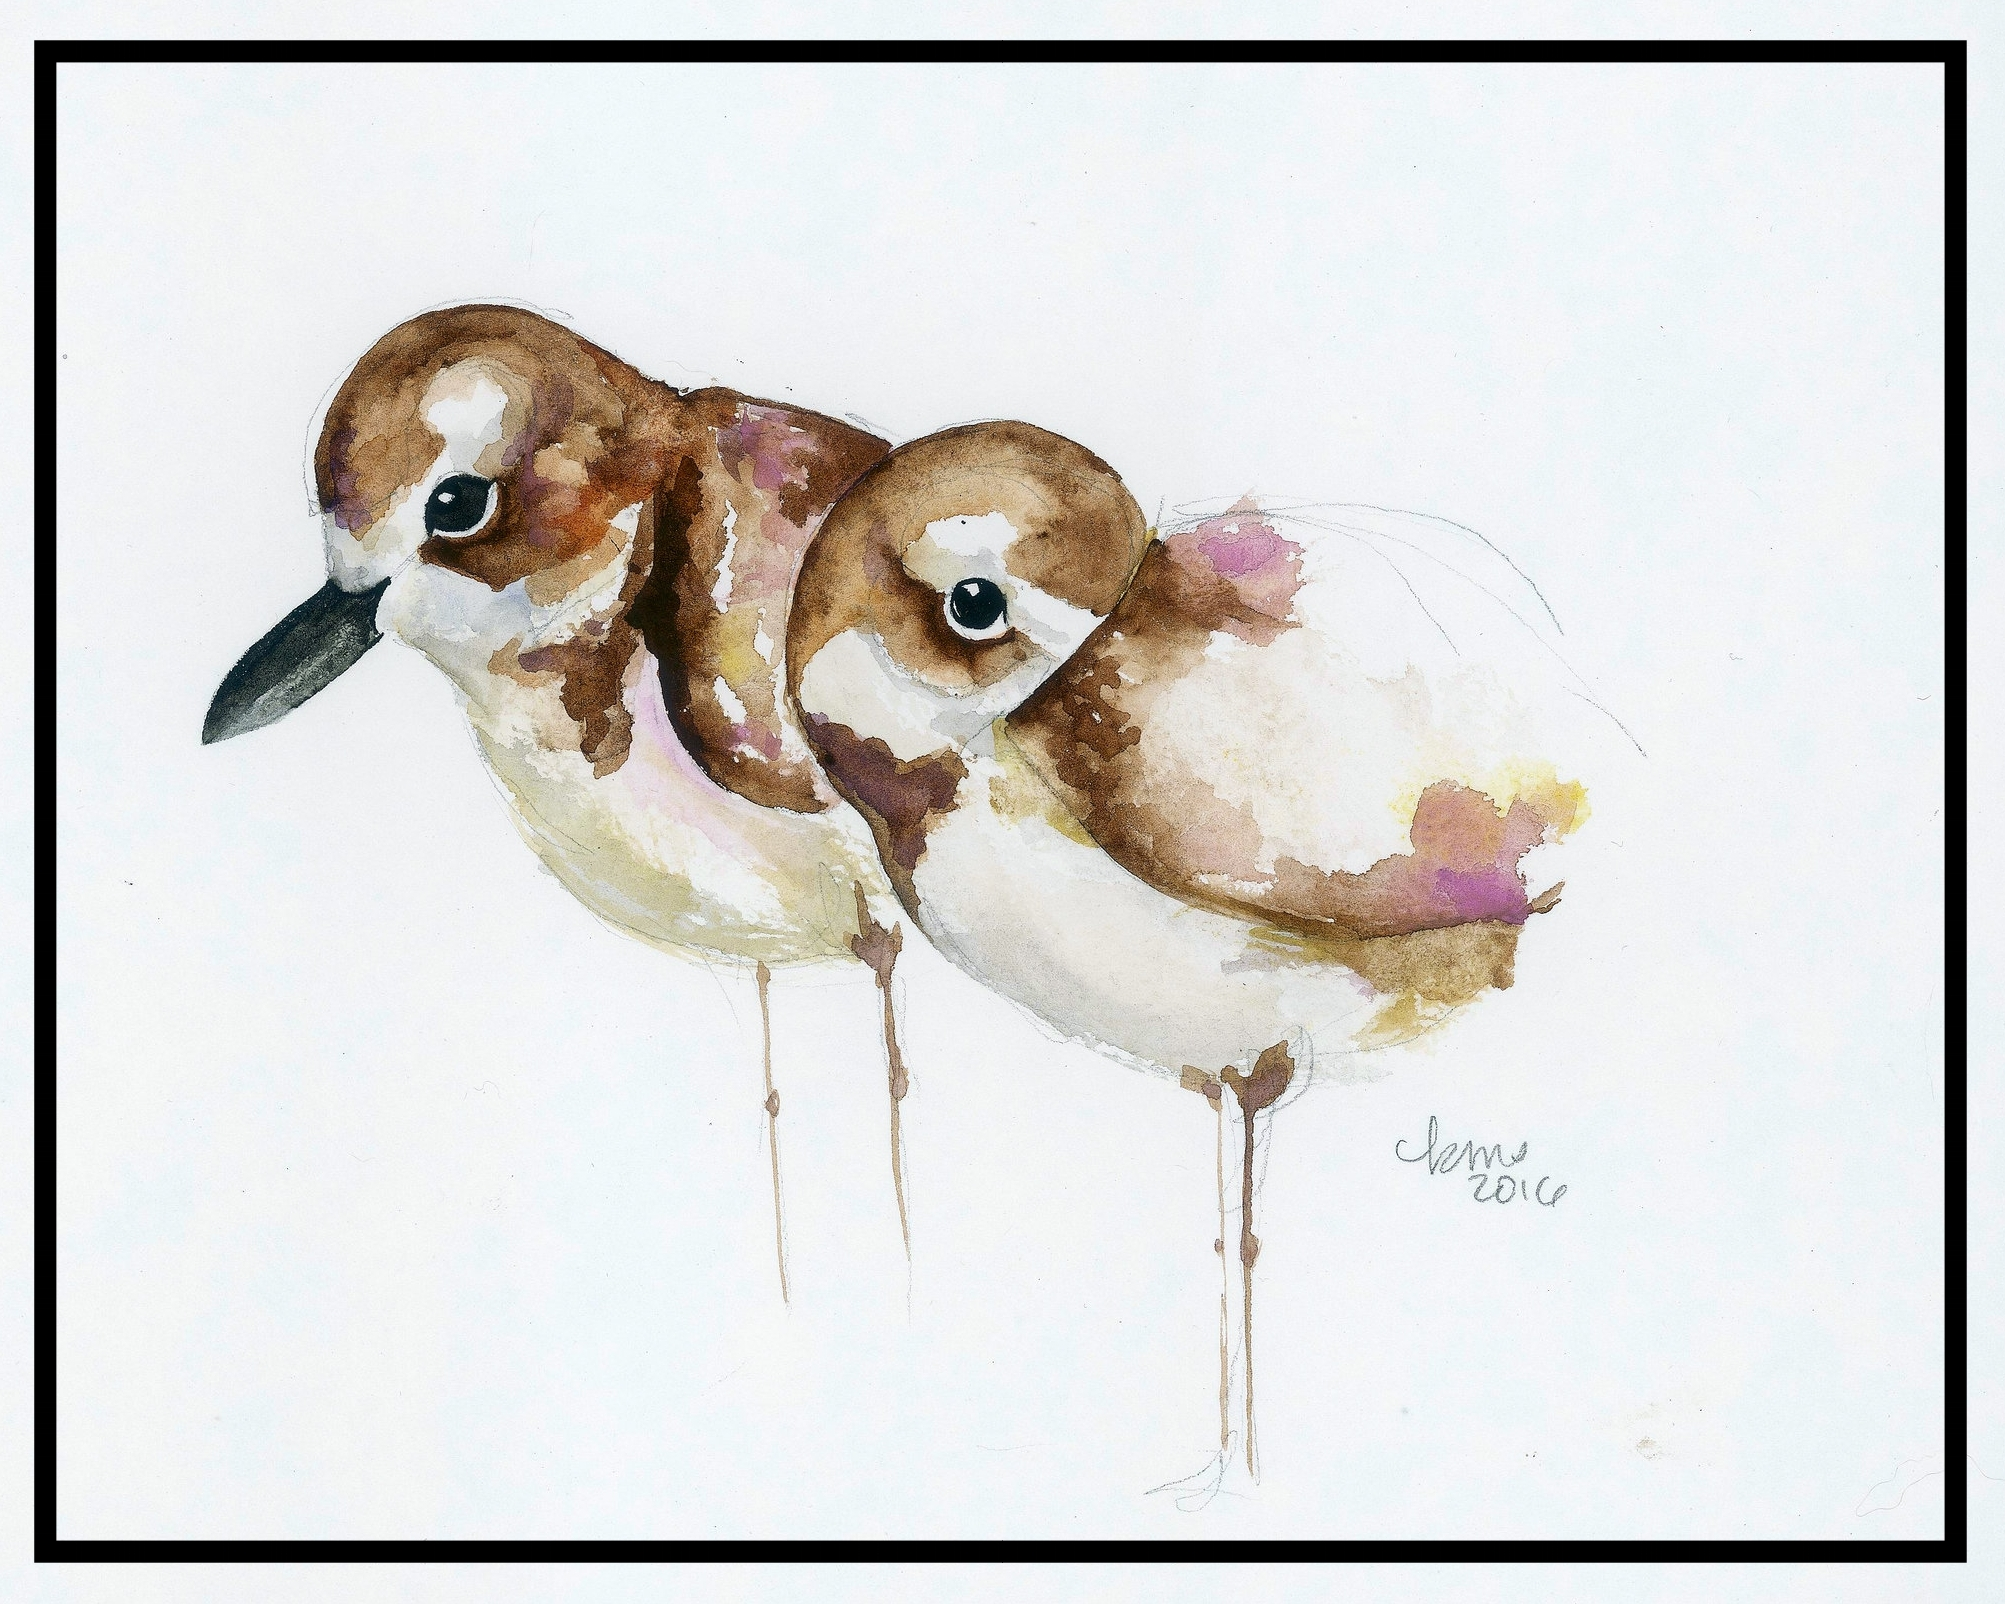 """Snowy plover pair - Tampa bay watch  The Snowy Plover Legacy Print was introduced in July 2018. Ten percent of the proceeds from these prints is donated to  Tampa Bay Watch , a non-profit organization dedicated to the """"protection and restoration of the Tampa Bay estuary through scientific and educational programs."""" Snowy plovers are listed in Florida as a Threatened species and require extra help to maintain their populations. Tampa Bay Watch's mission is to protect the environment in which the plovers live."""